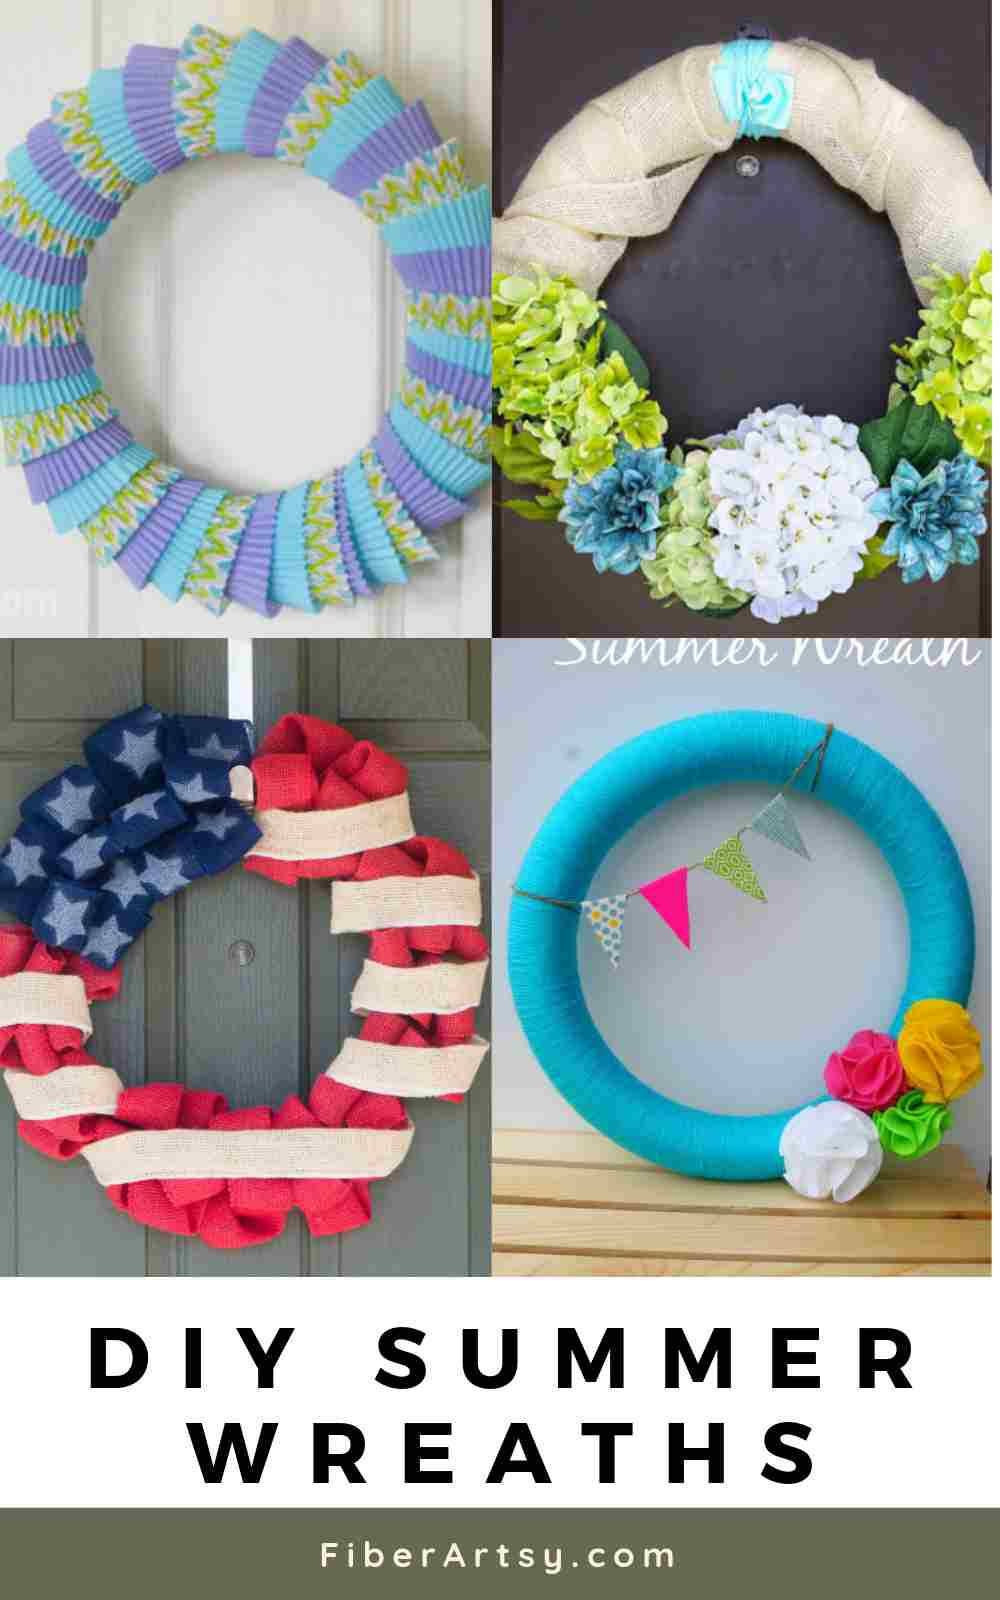 DIY and Handmade Summer Wreath Ideas